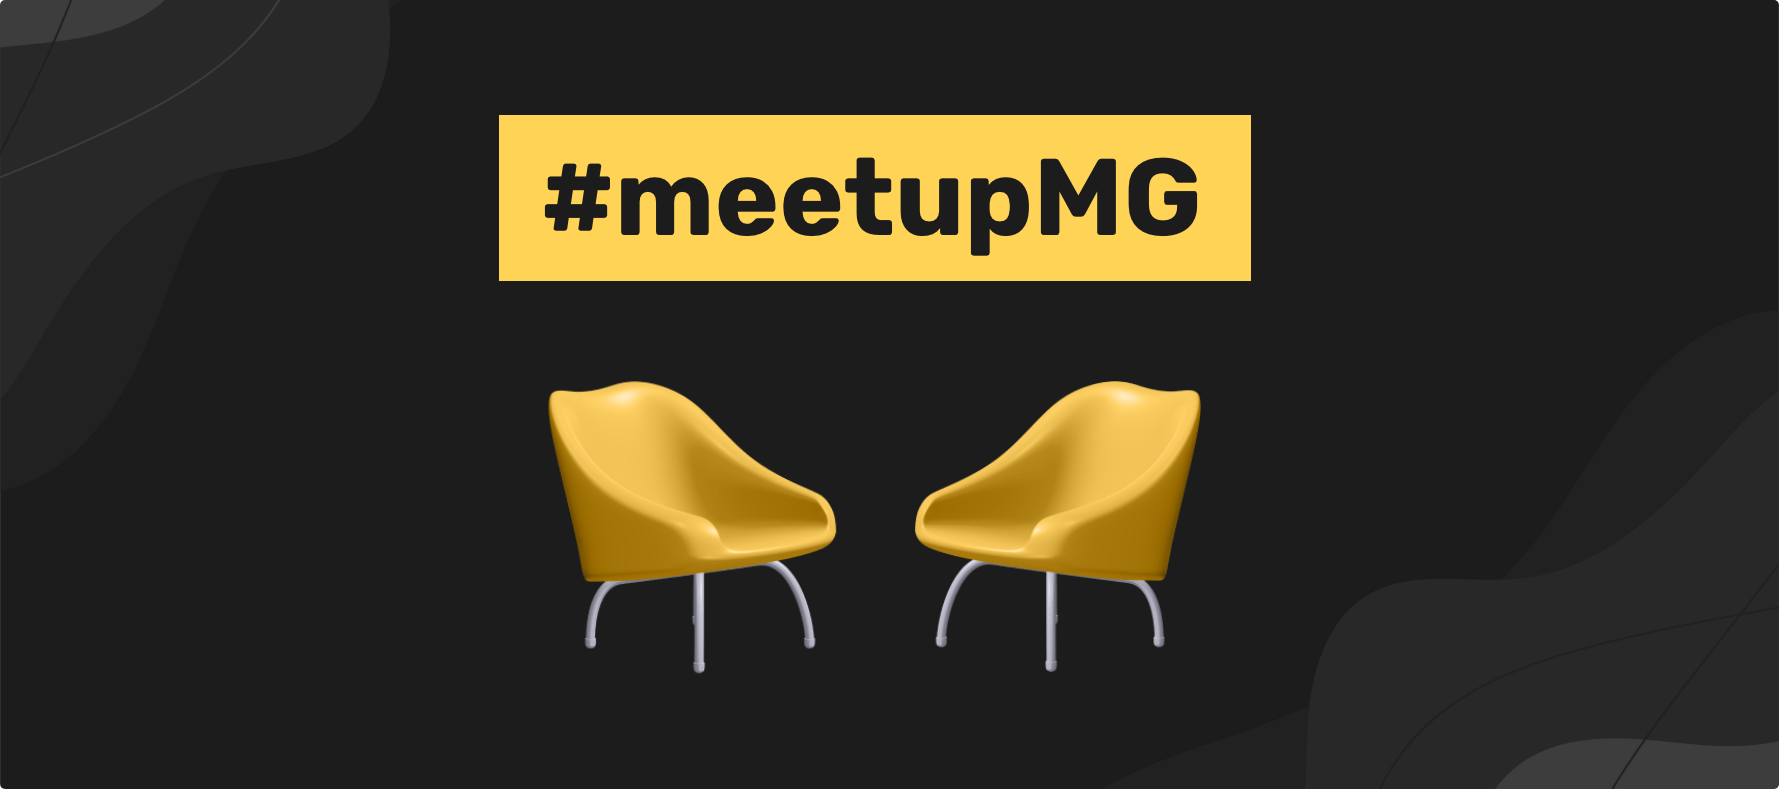 Key Visual ,,#meetupMG,,